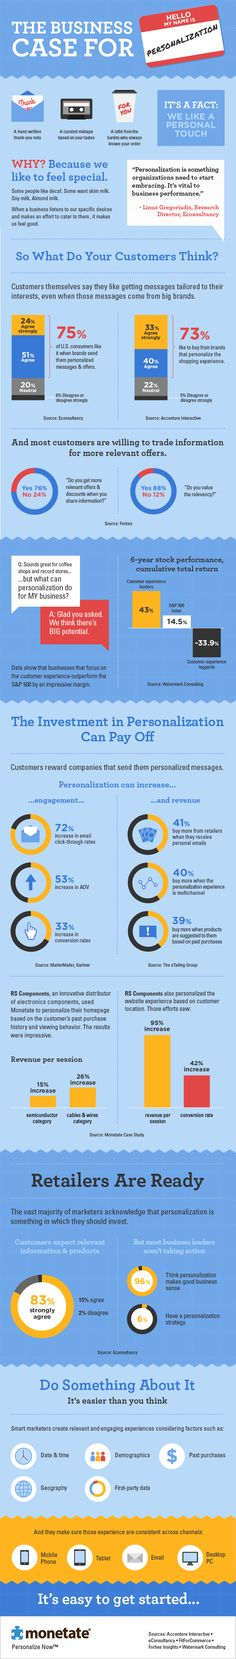 The business case for personalization